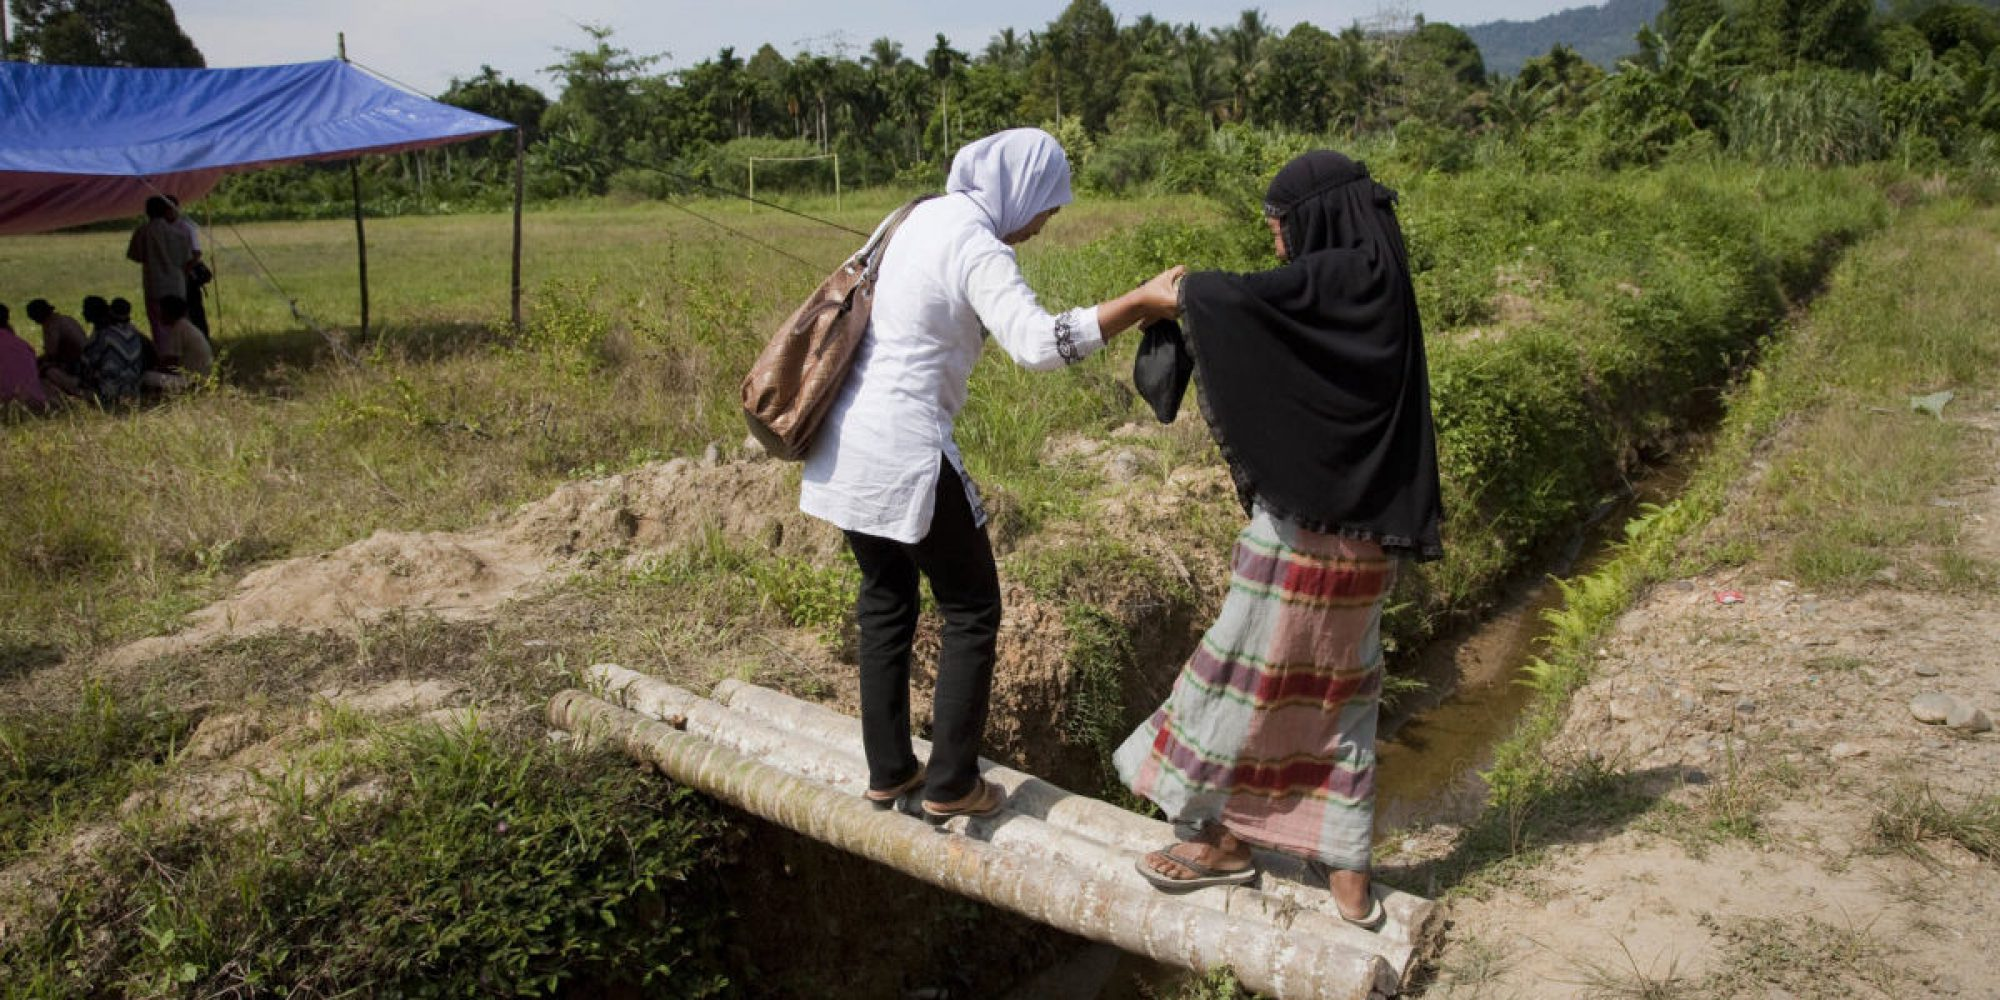 JRS Indonesia team member assists a woman crossing the bamboo bridge.